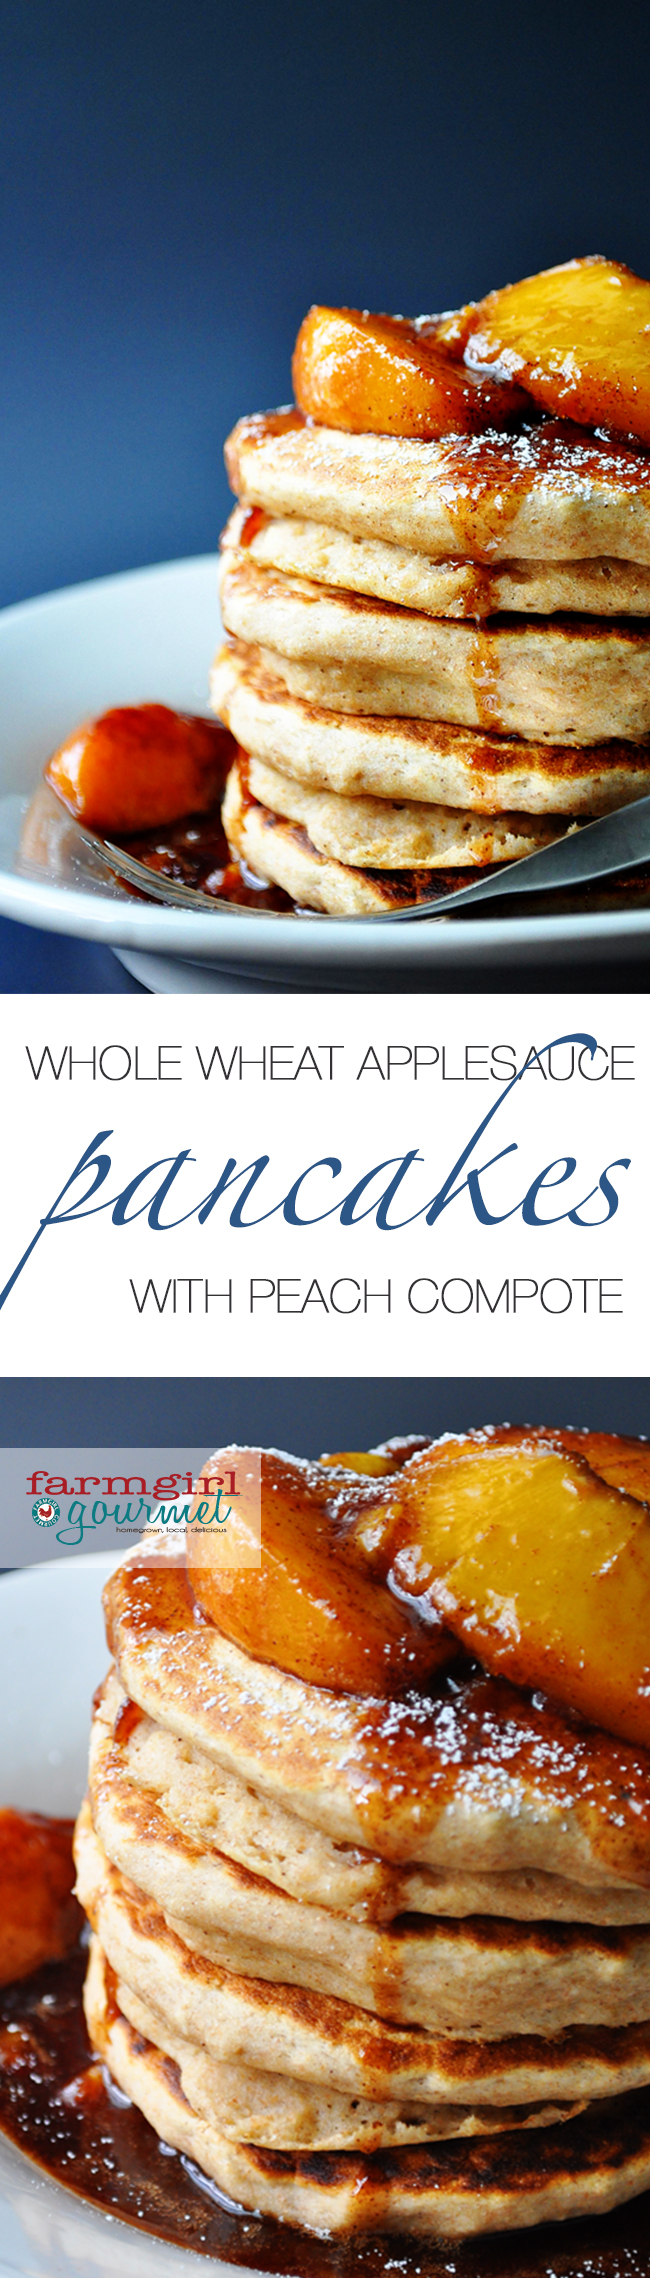 Whole Wheat Applesauce Pancakes with Fresh Peach Compote - Farmgirl ...